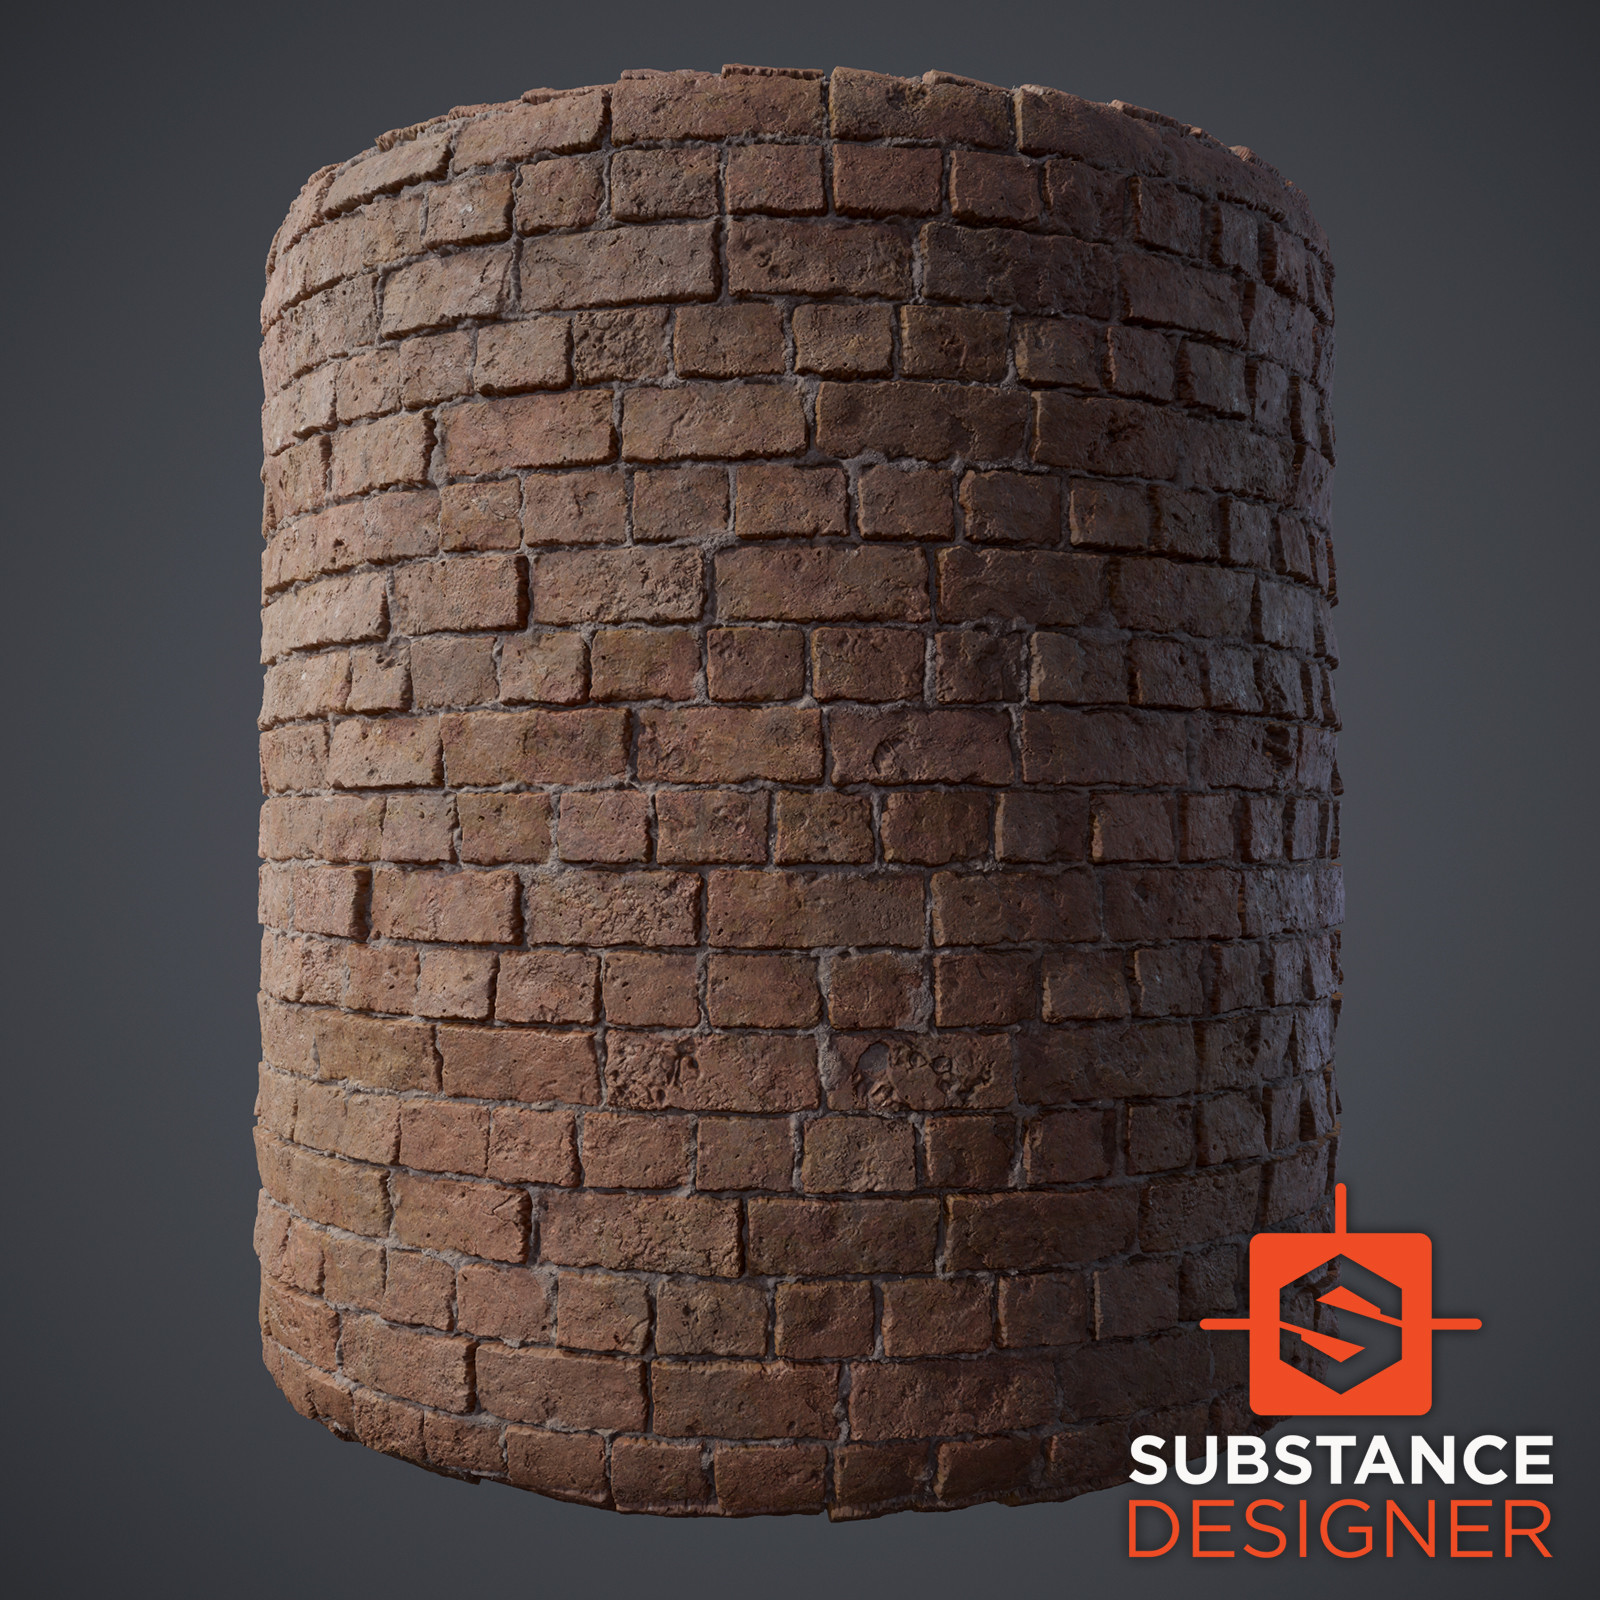 Worn Brick (Substance Designer)